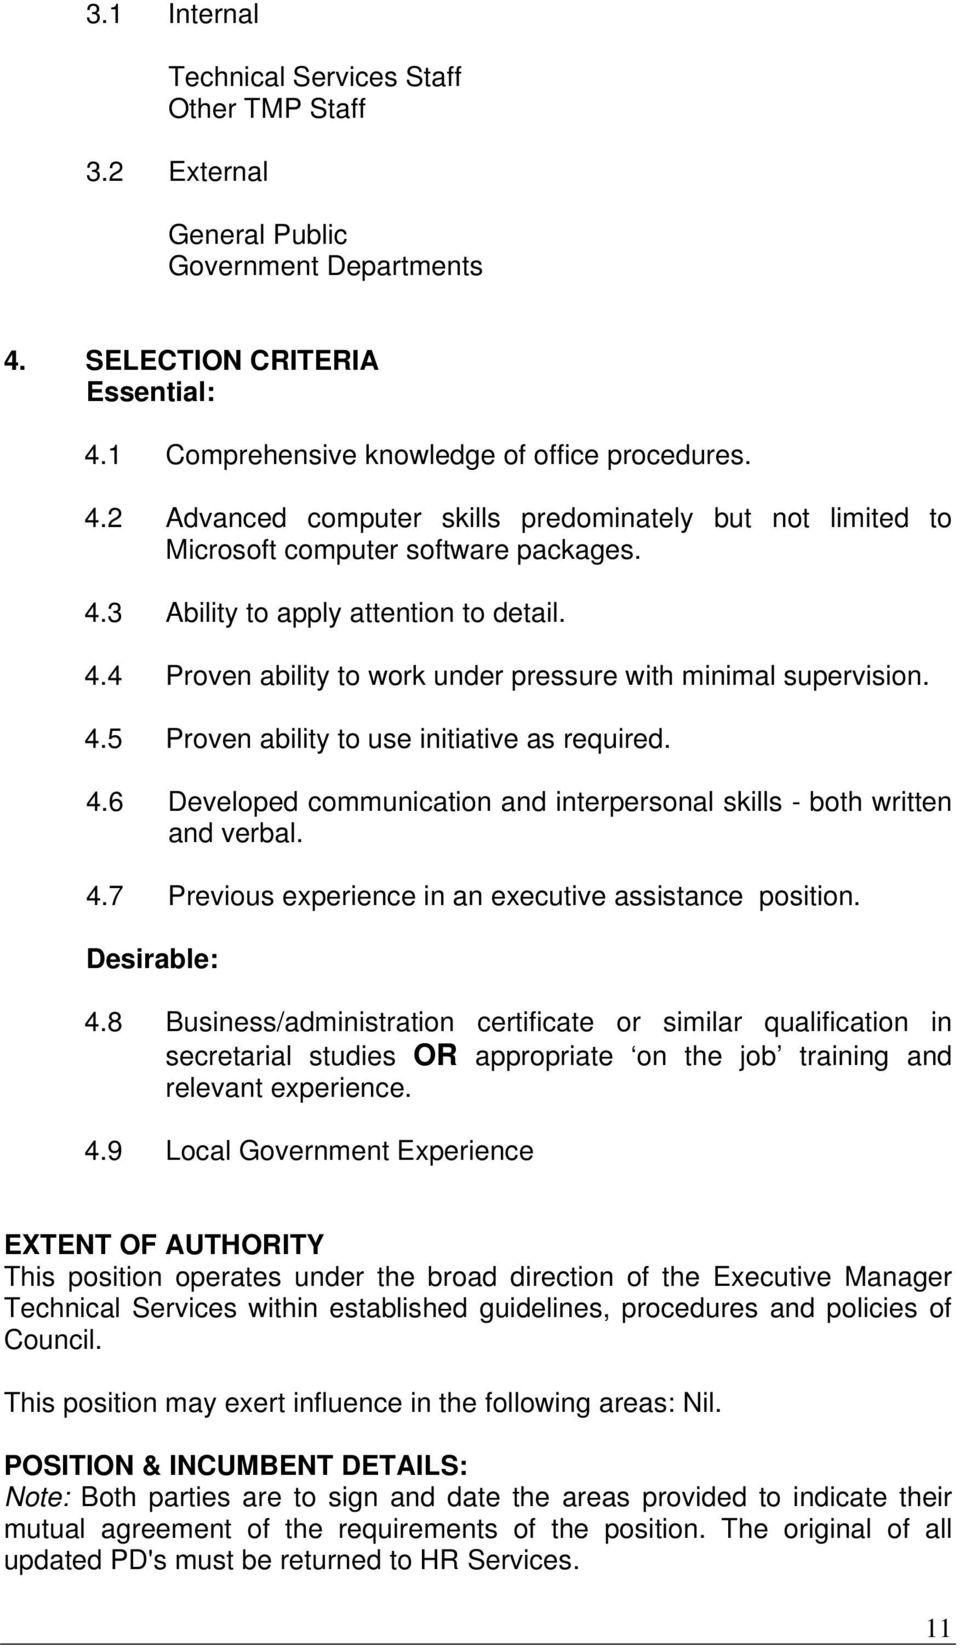 4.4 Proven ability to work under pressure with minimal supervision. 4.5 Proven ability to use initiative as required. 4.6 Developed communication and interpersonal skills - both written and verbal. 4.7 Previous experience in an executive assistance position.